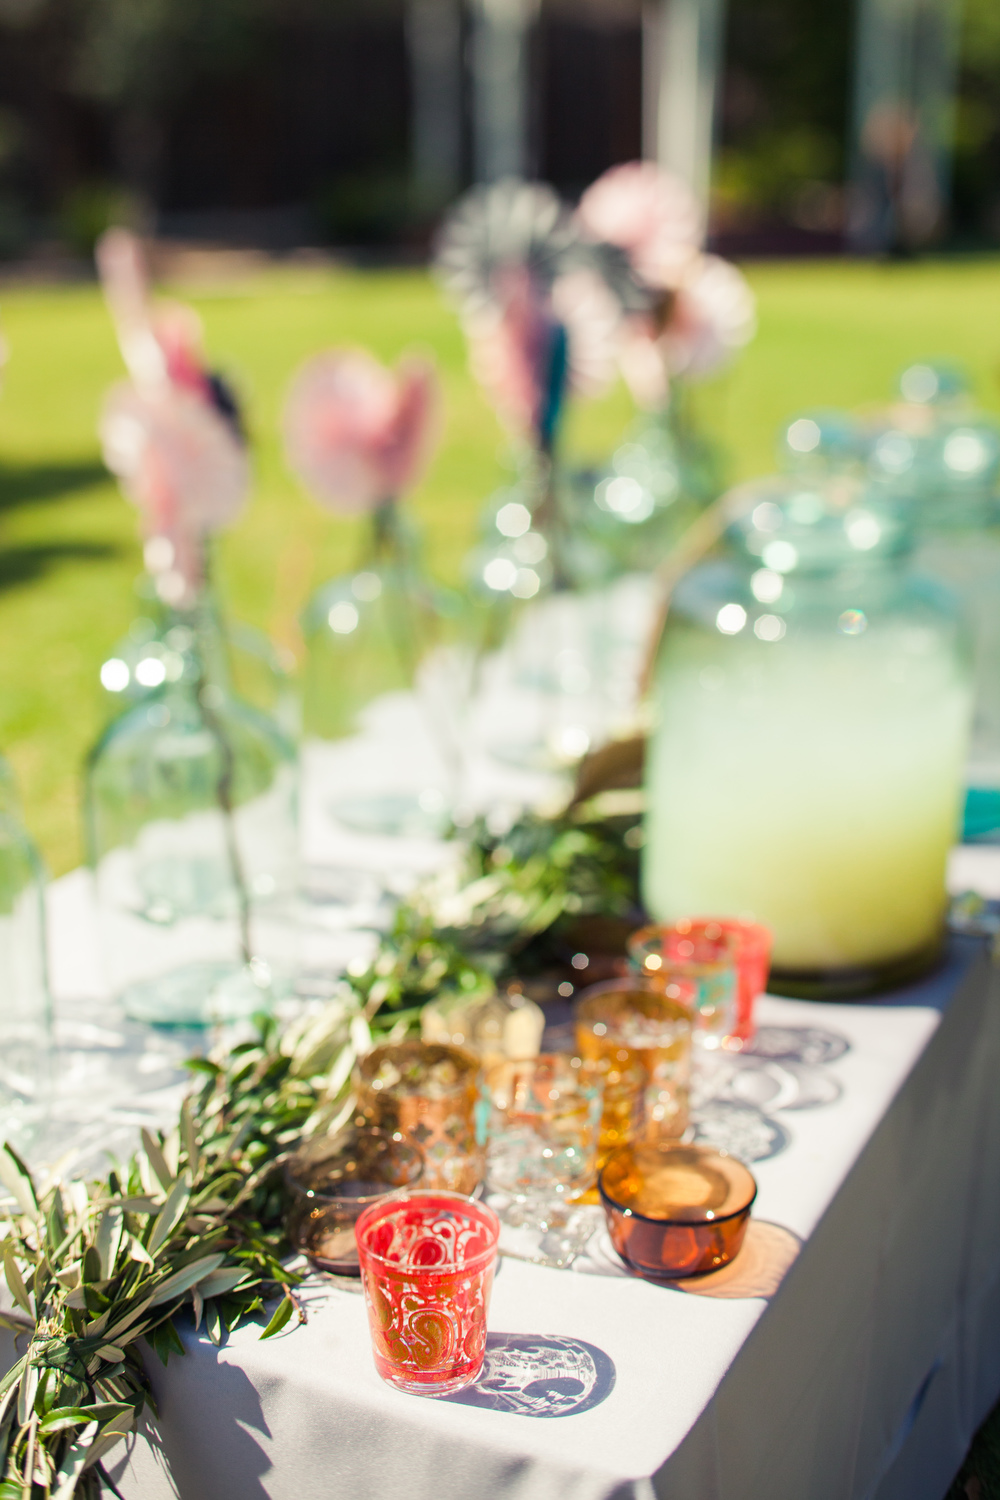 Paige-Newton-Photography-Wedding-Details-Vintage-Glassware.jpg